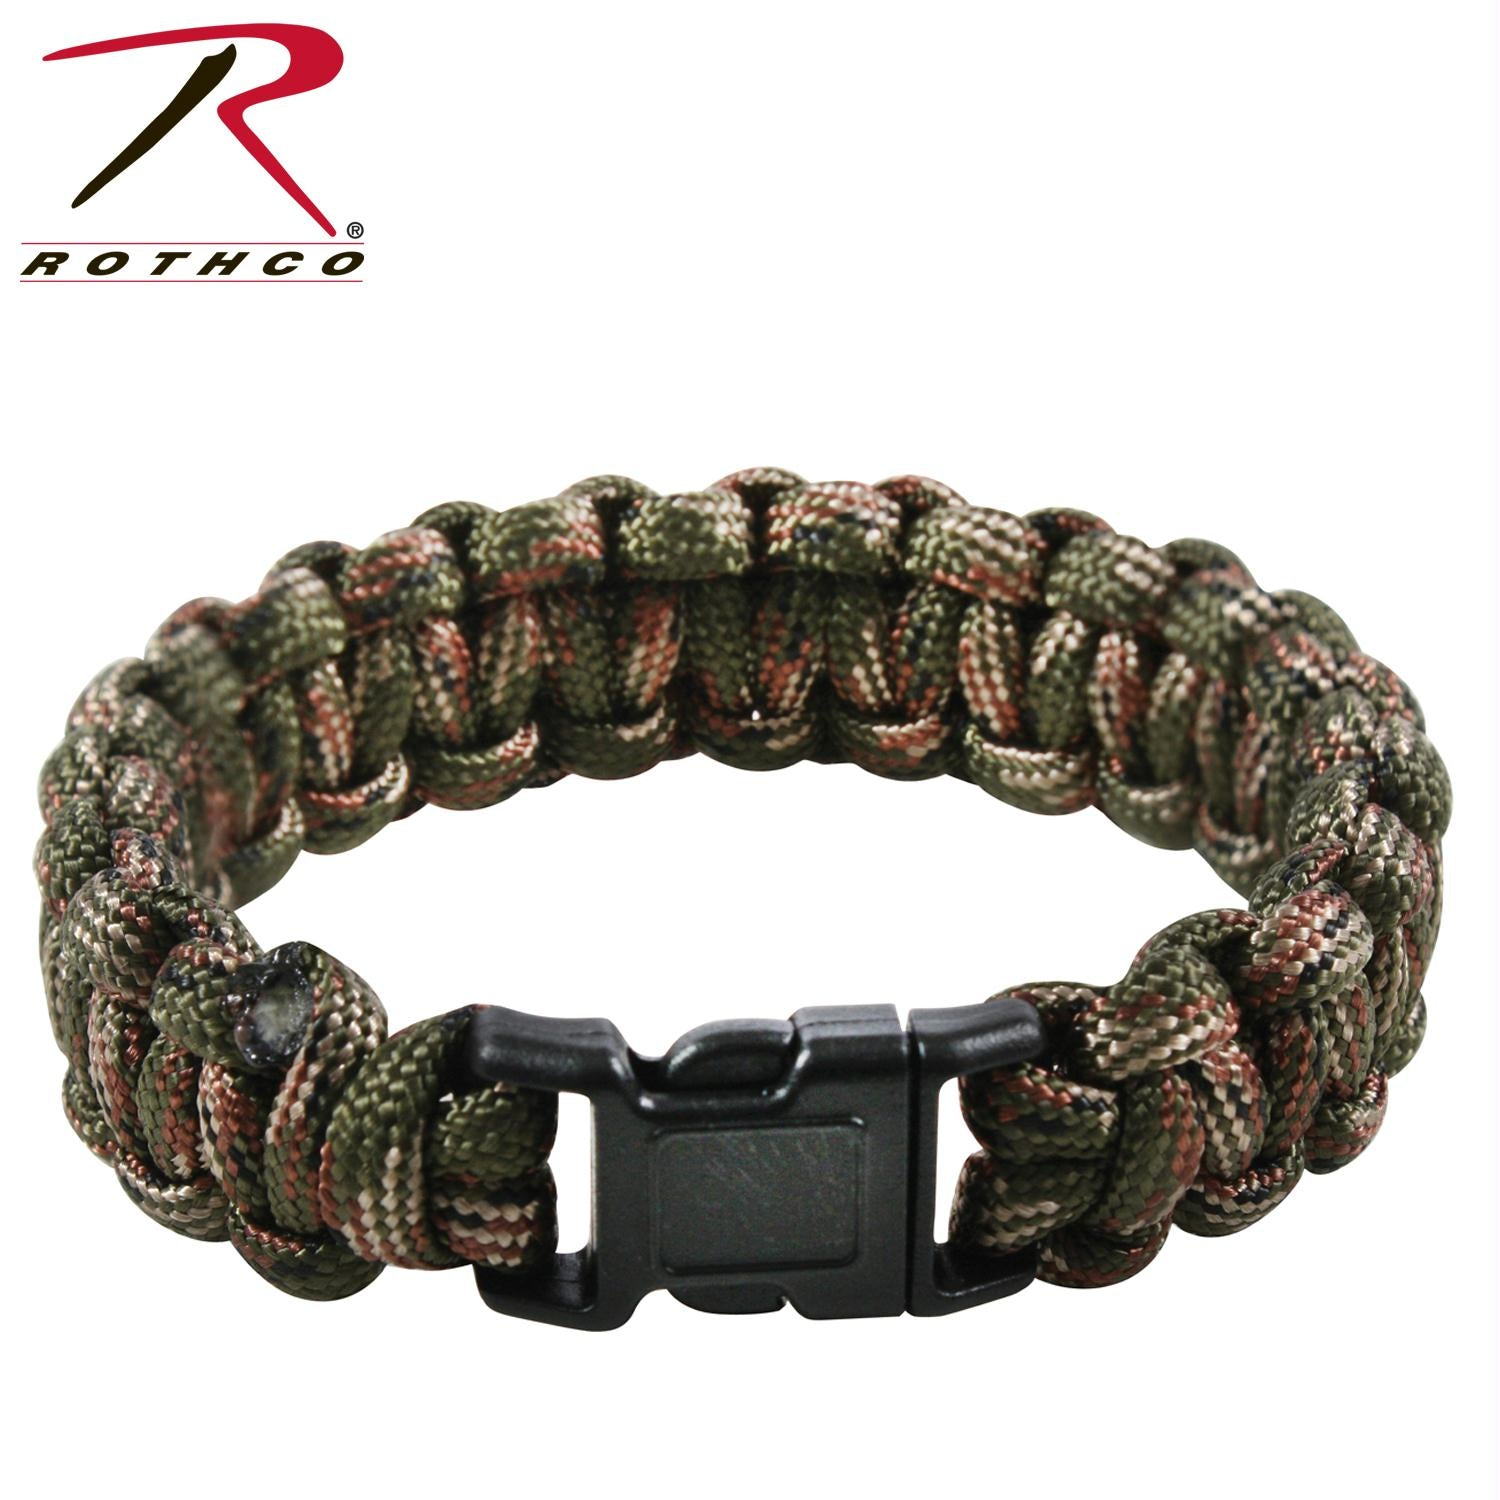 Rothco Multi-Colored Paracord Bracelet - Woodland Camo / 10 Inches